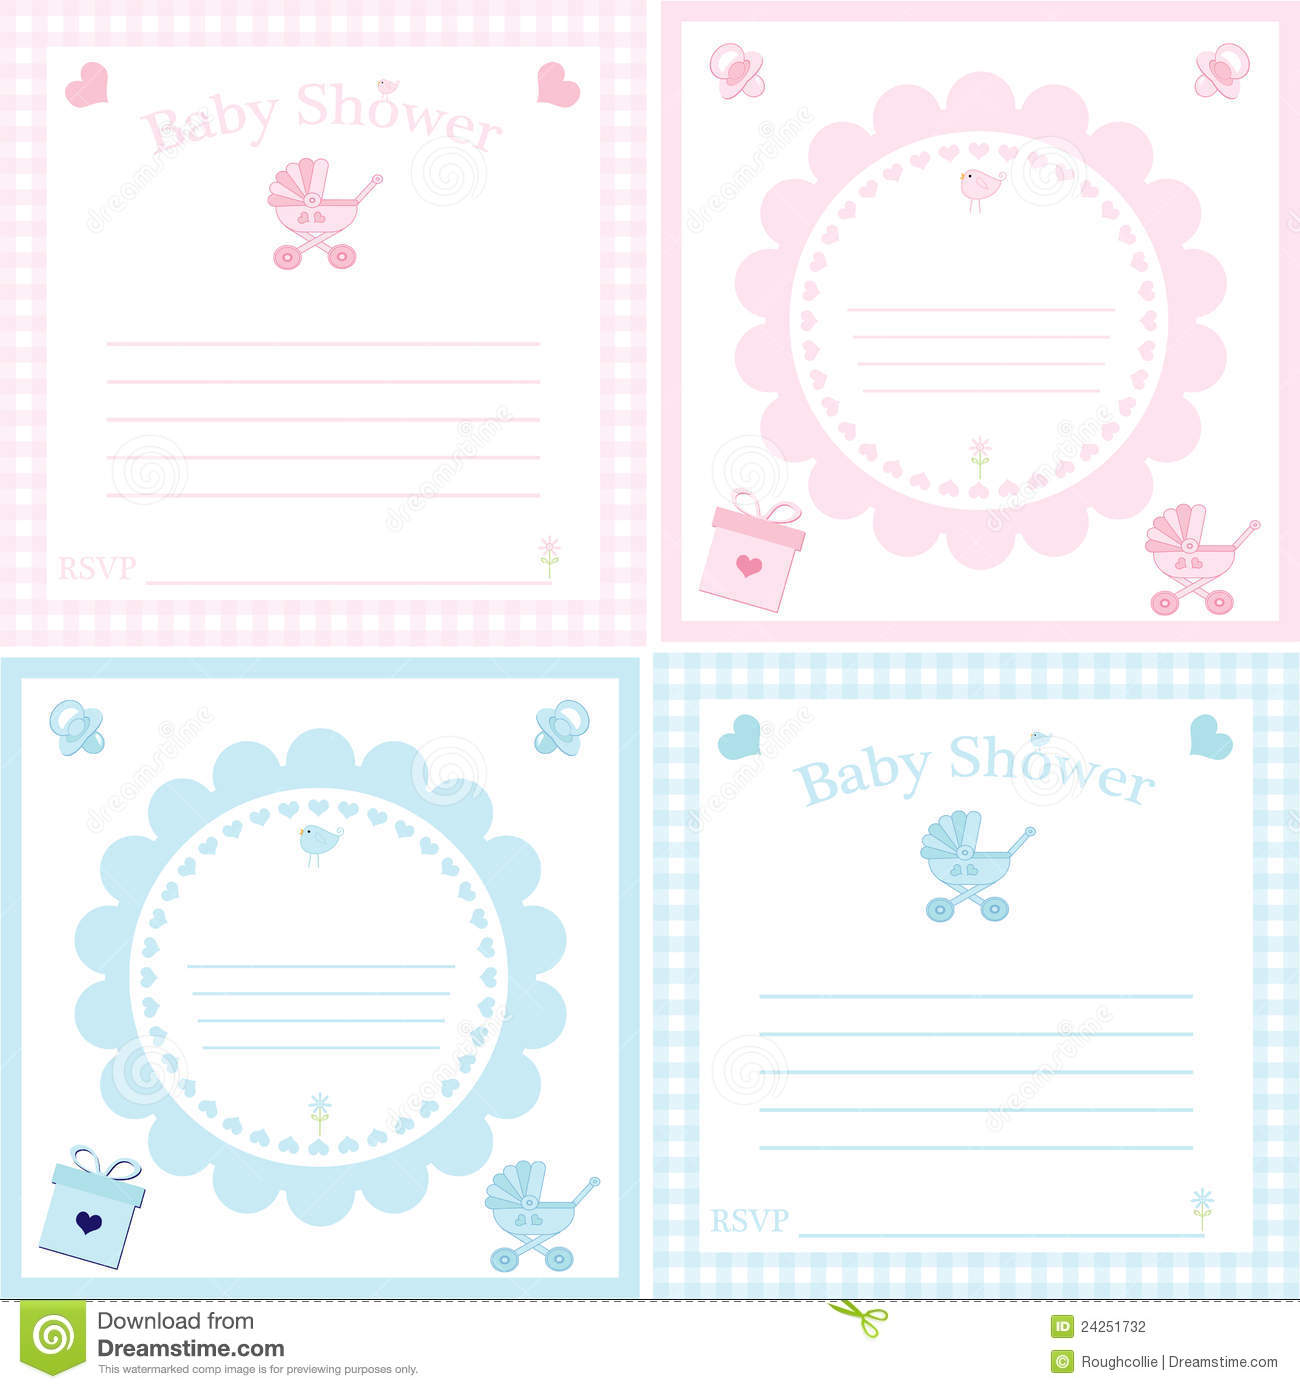 Girl Baby Shower Invitations as nice invitations sample